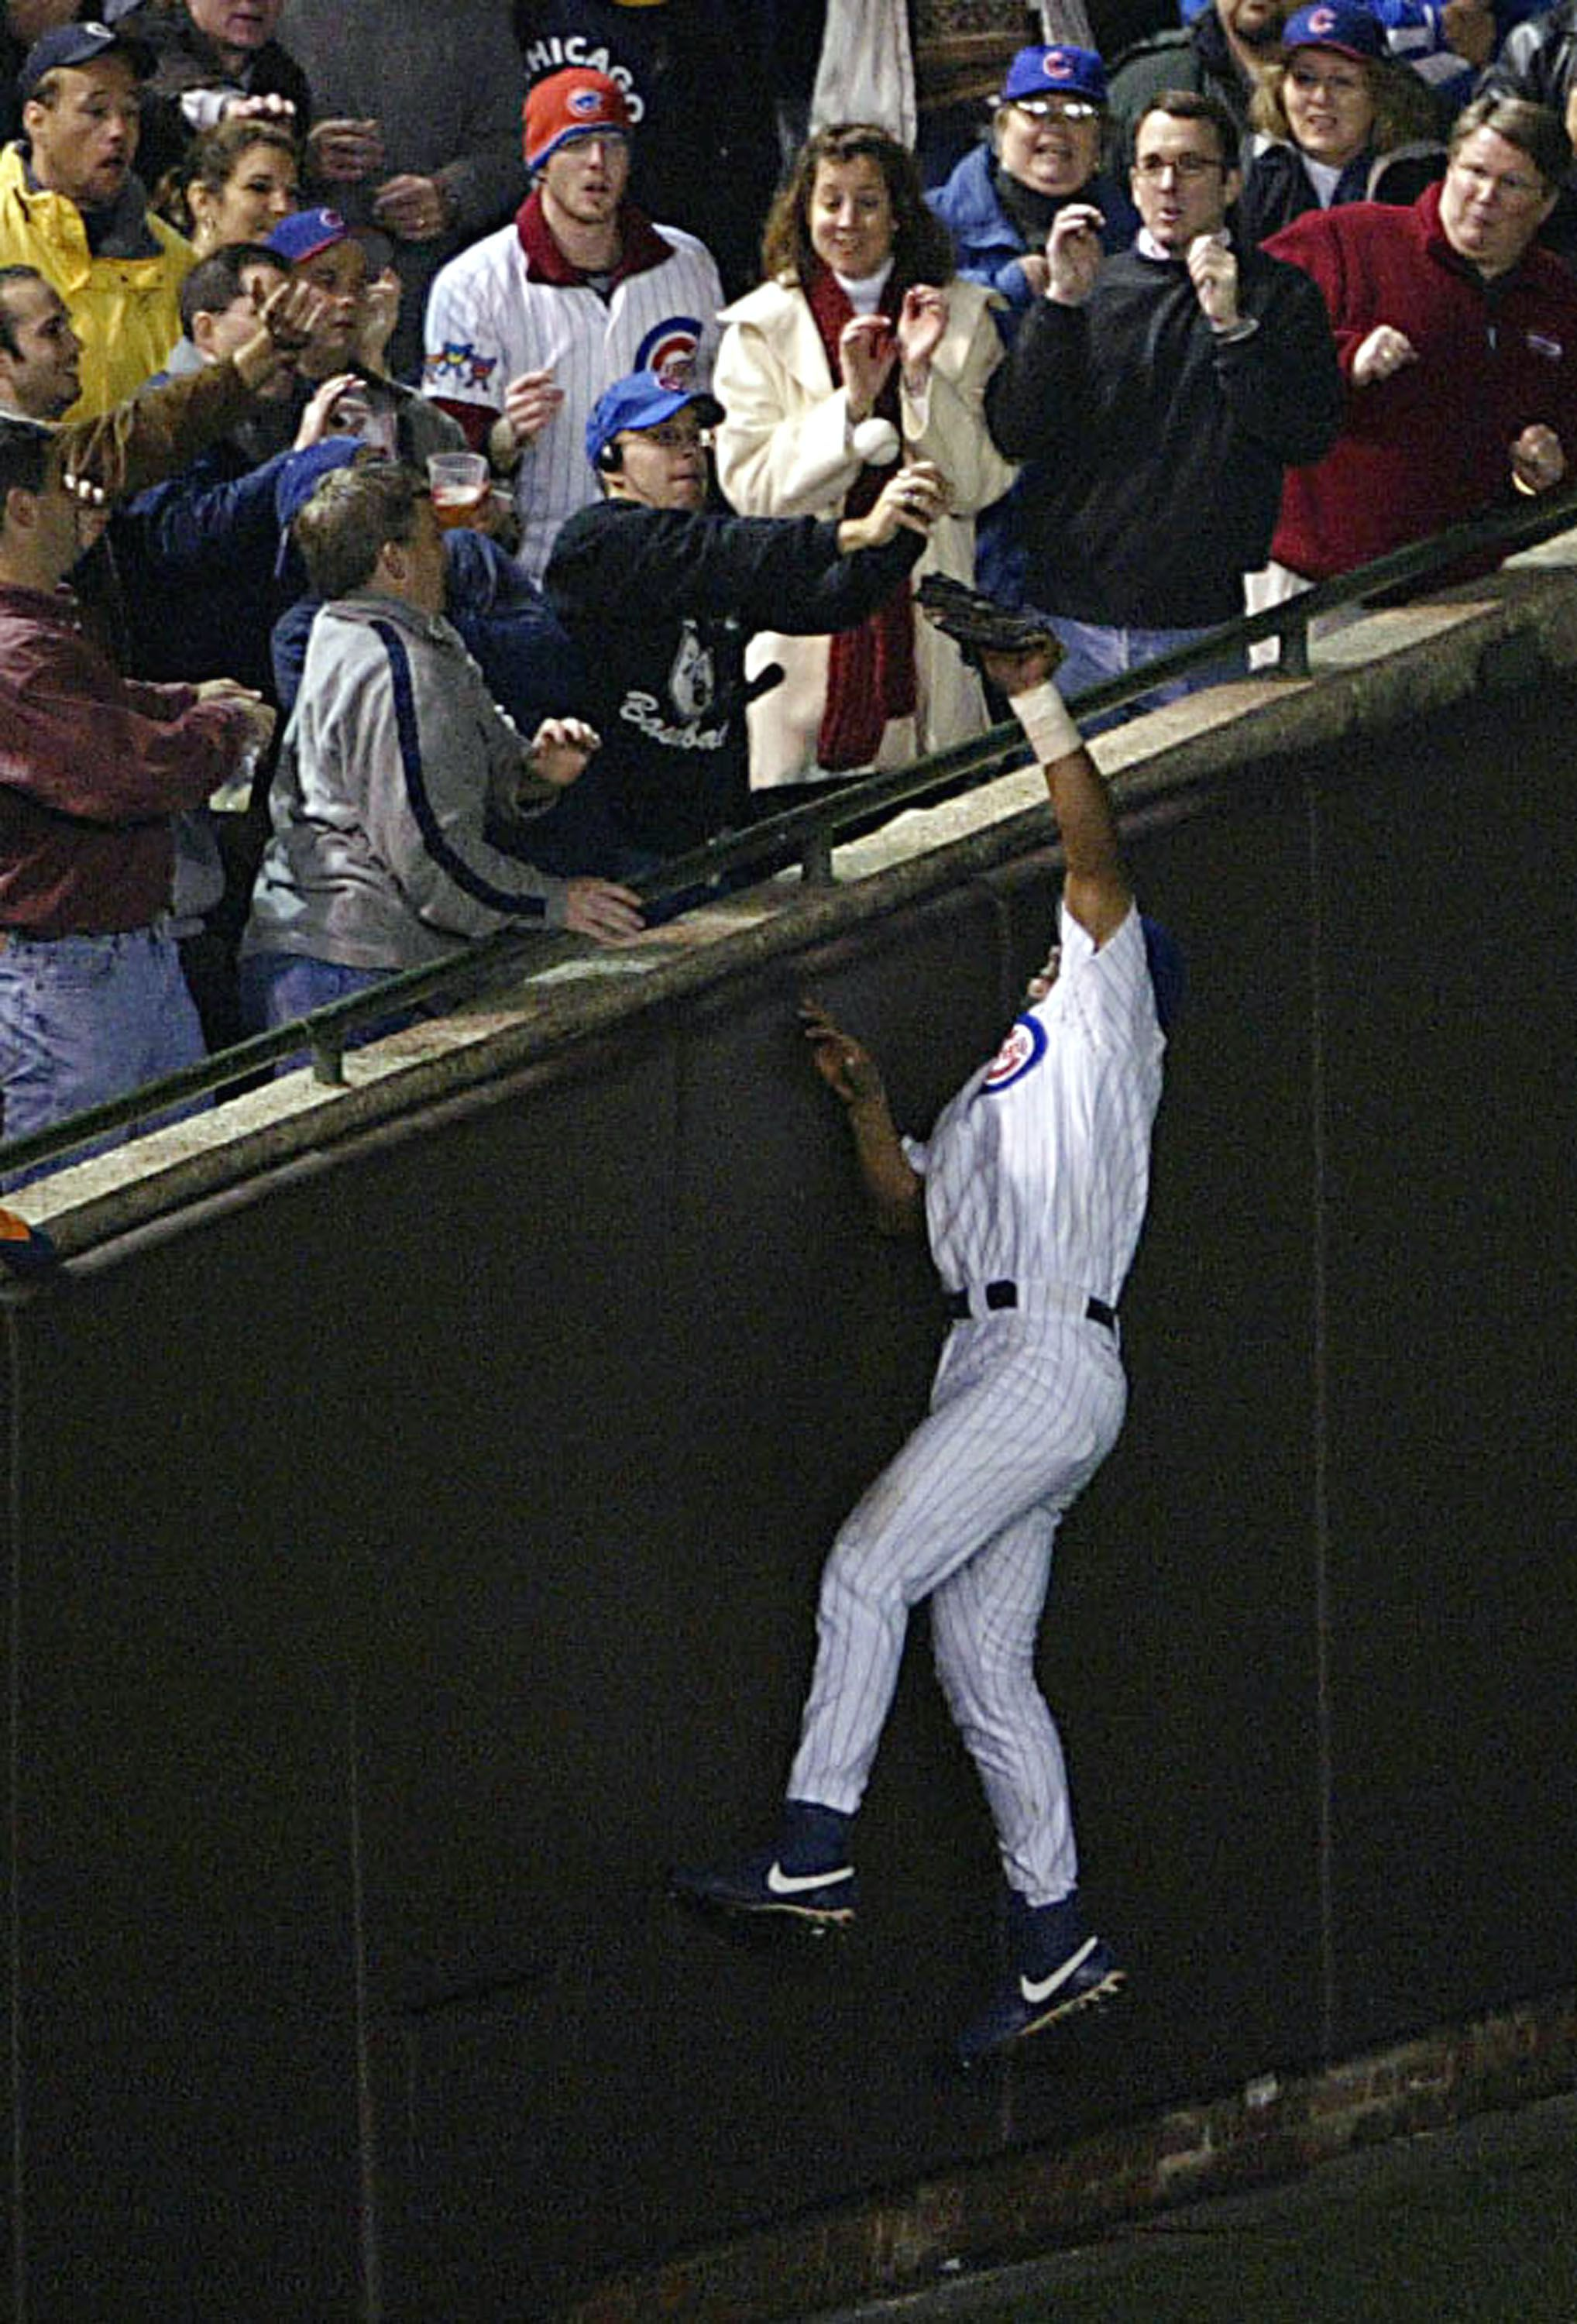 Fan interferes with Cubs player